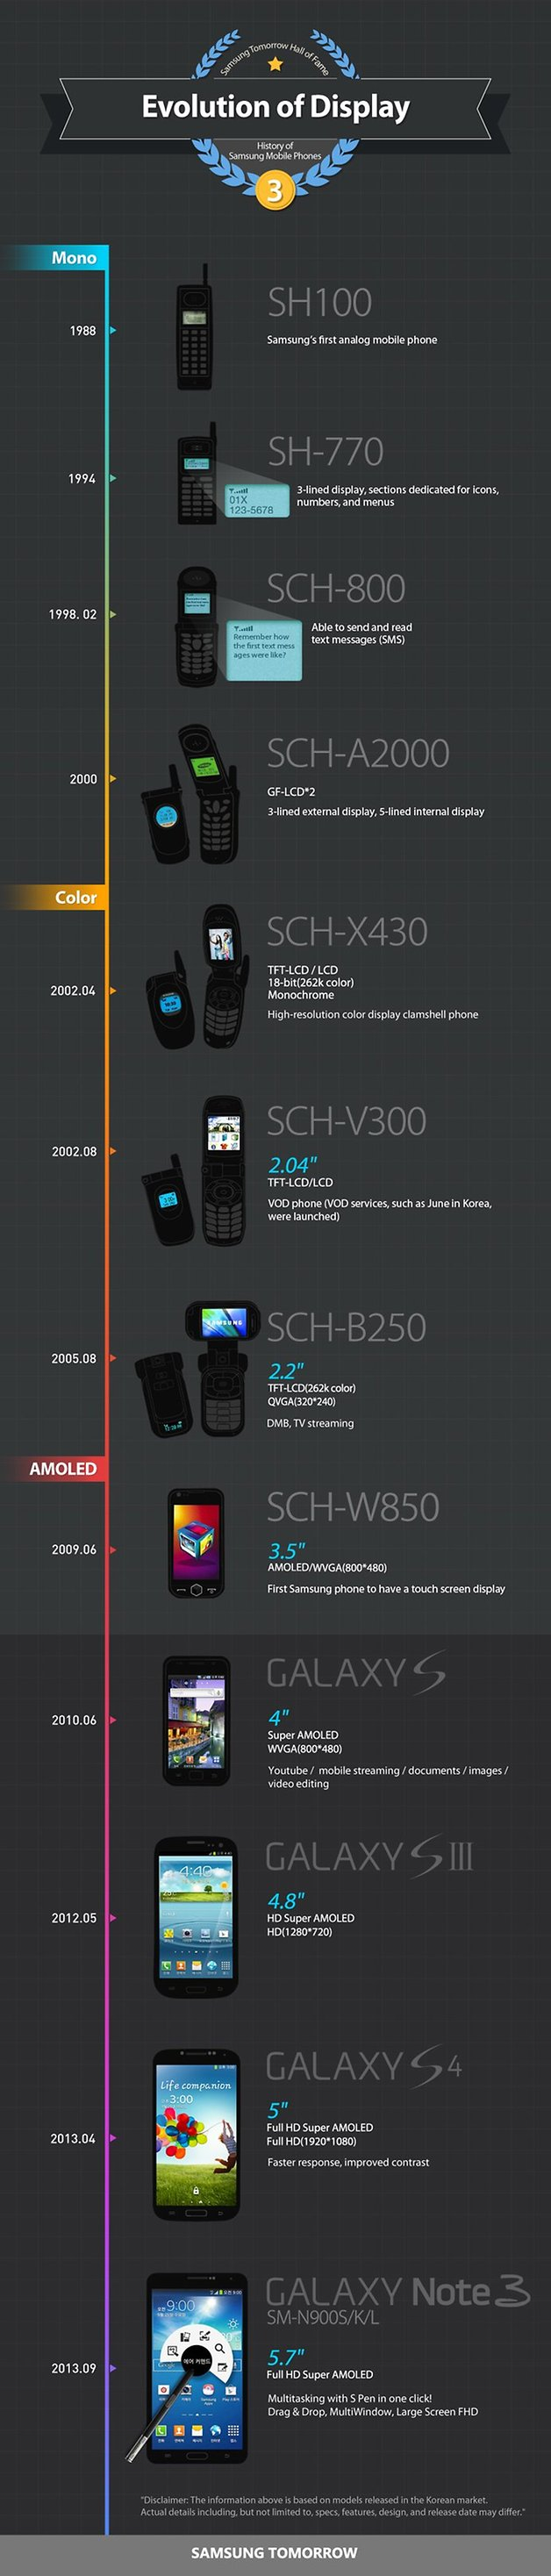 Infographic History of Samsung Mobile Phones Evolution of Display